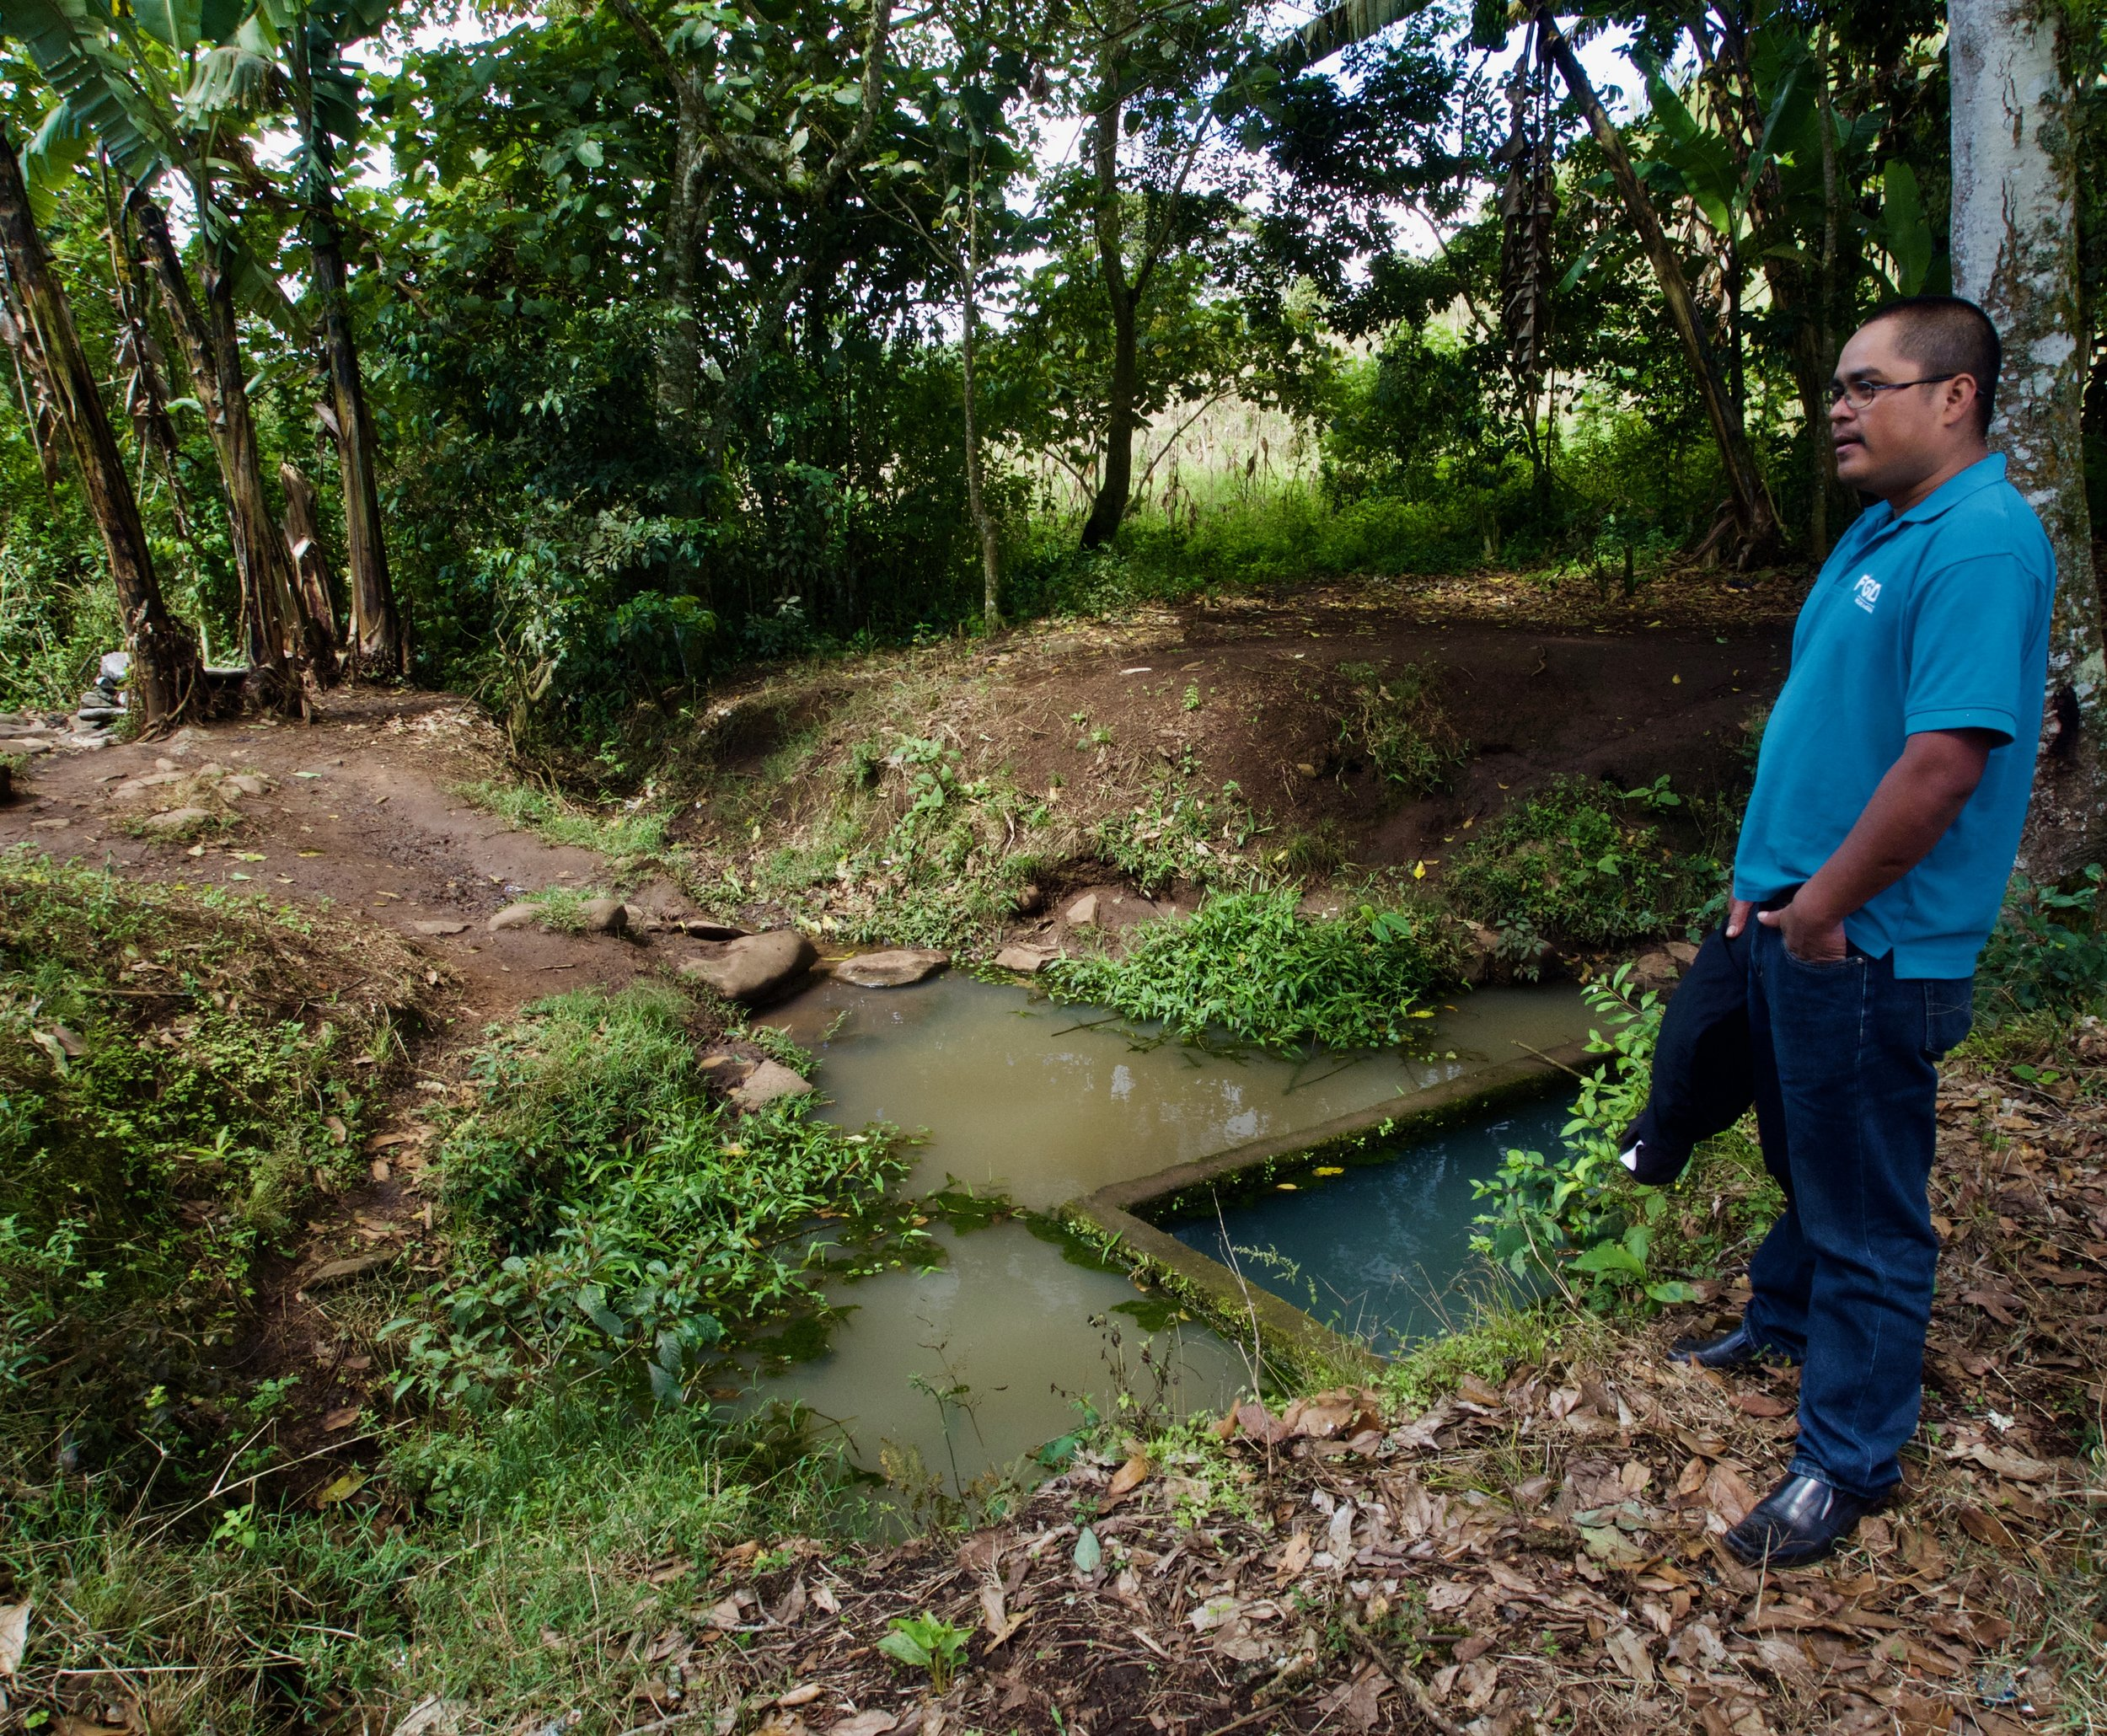 Community president Humberto stands next to the current, polluted water source in Yanque.